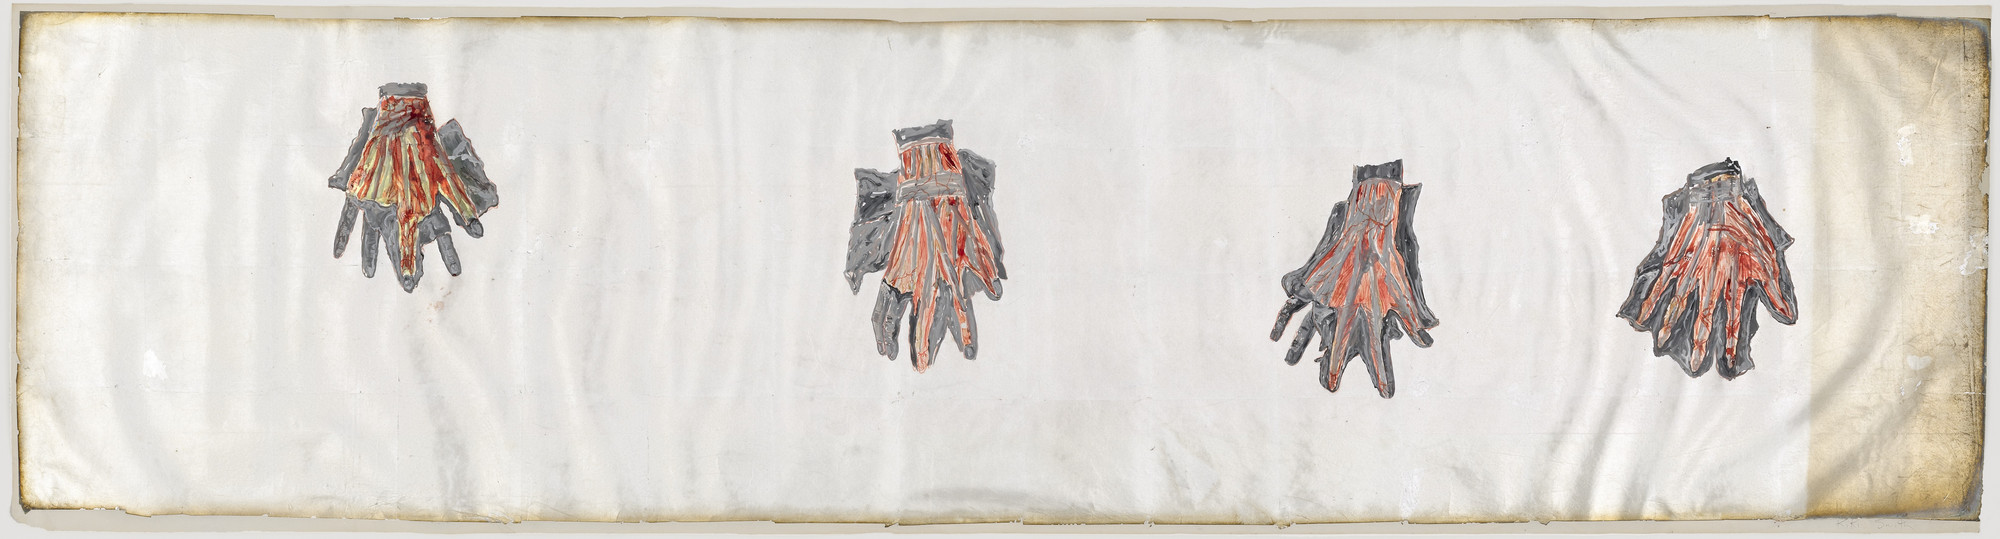 Kiki Smith. Untitled (Hands). 1994